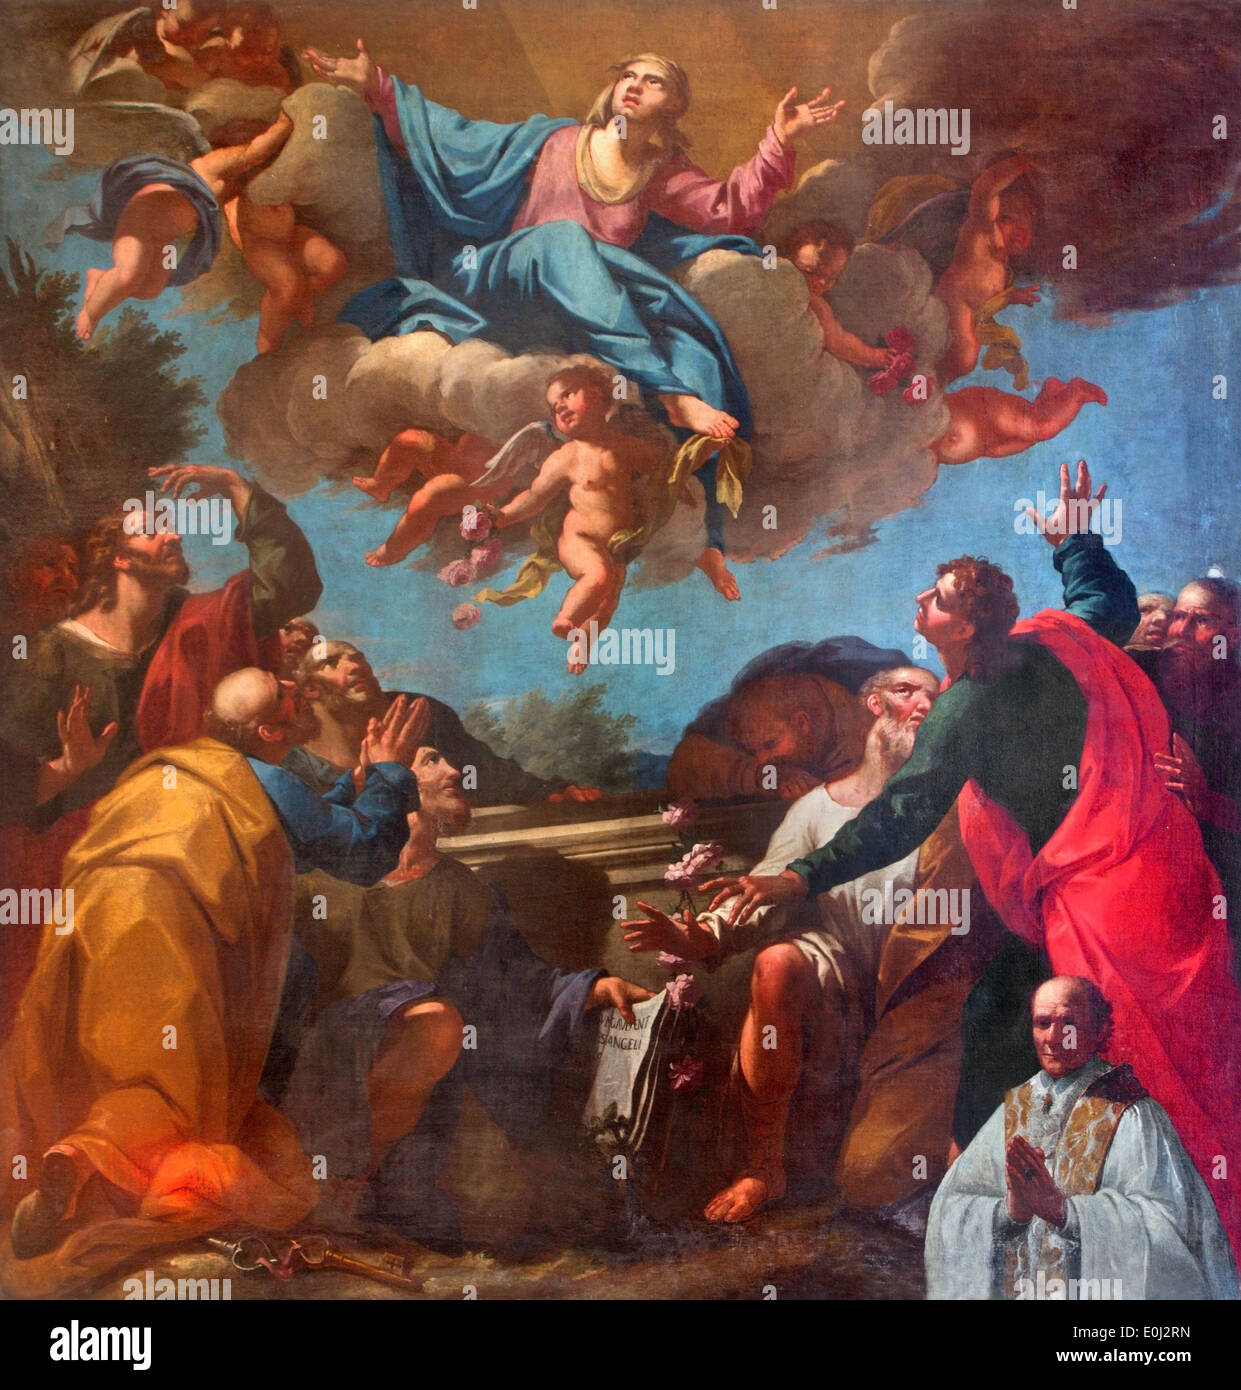 Venice - The Assumption of Virgin Mary paint by in church of San Martino or Saint Martin on Burano island - Stock Image